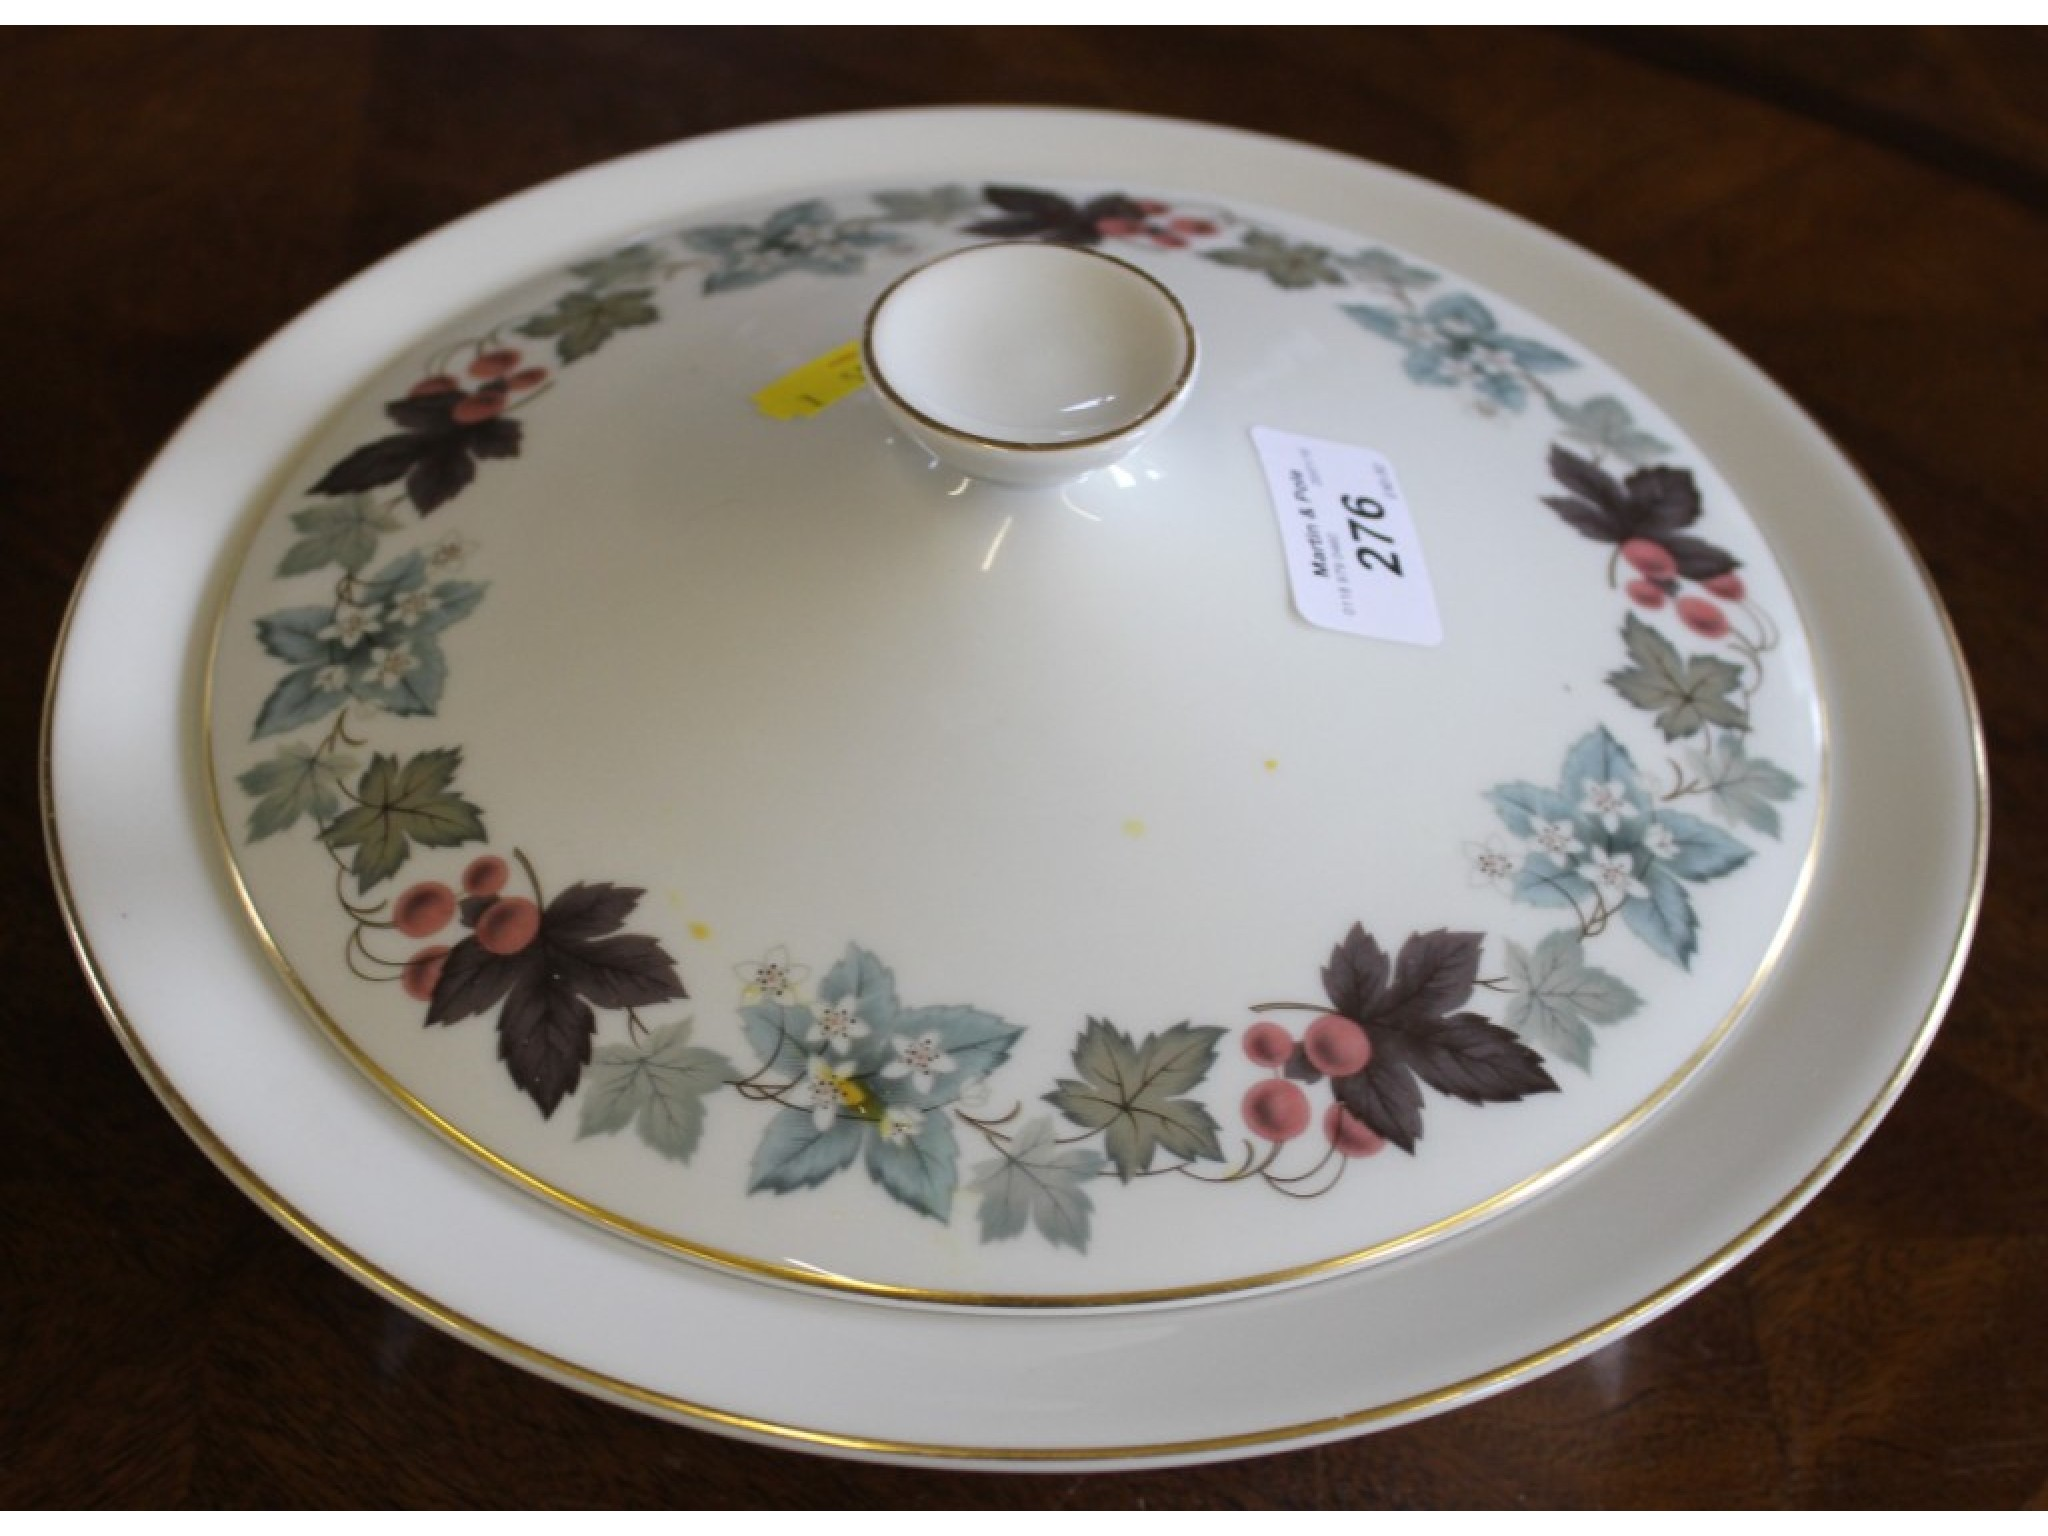 A Royal Doulton Camelot dinner service comprising forty-four pieces